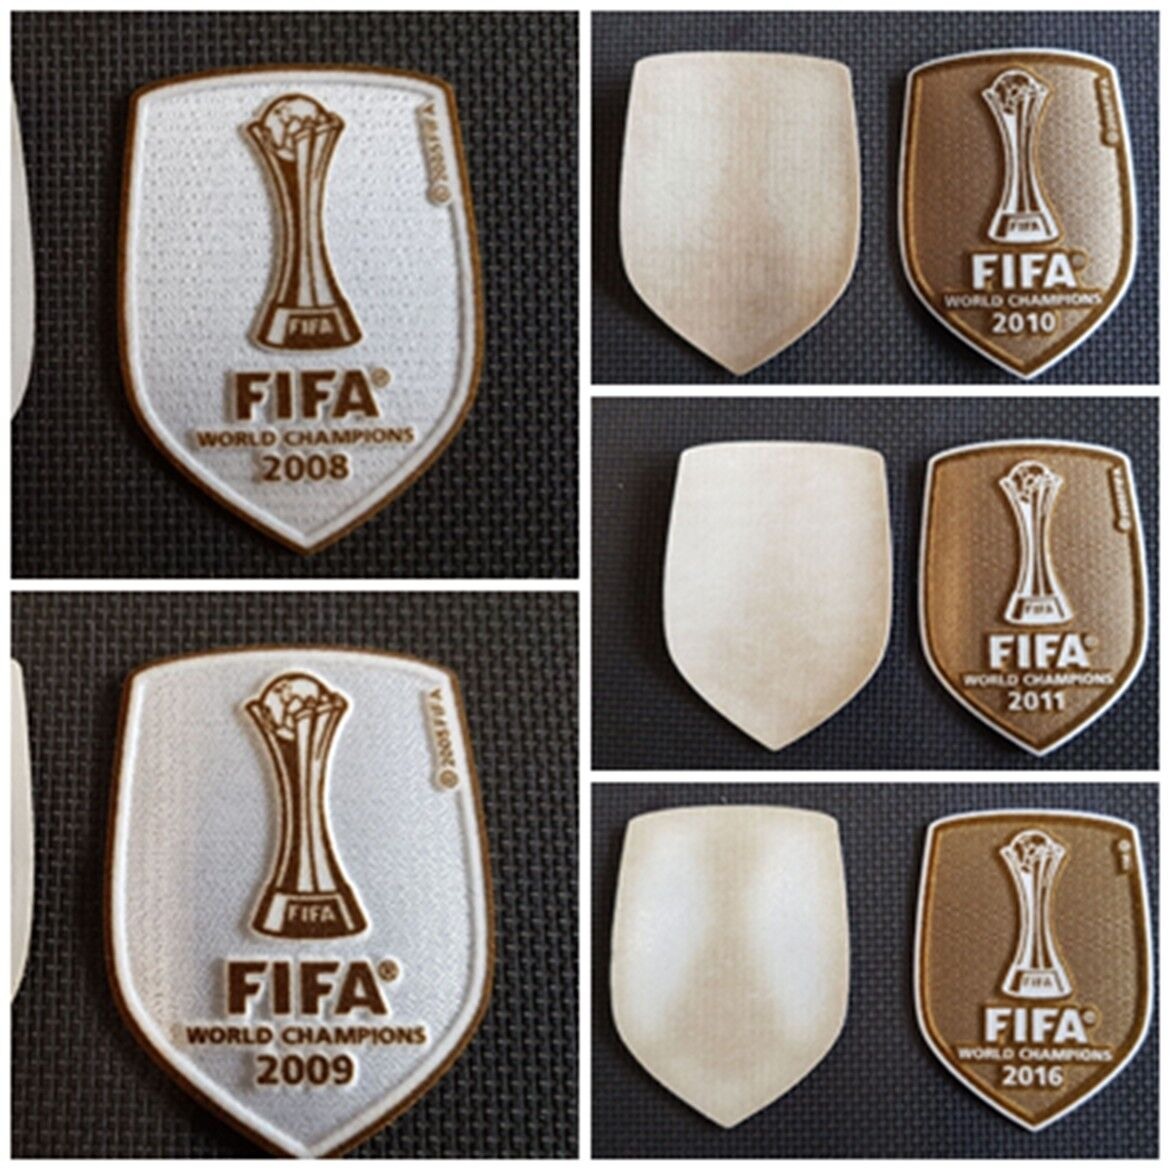 LEXTRA SPORTING ID PATCH FIFA WORLD CHAMPIONS CLUB PATCH BADGE PATCH